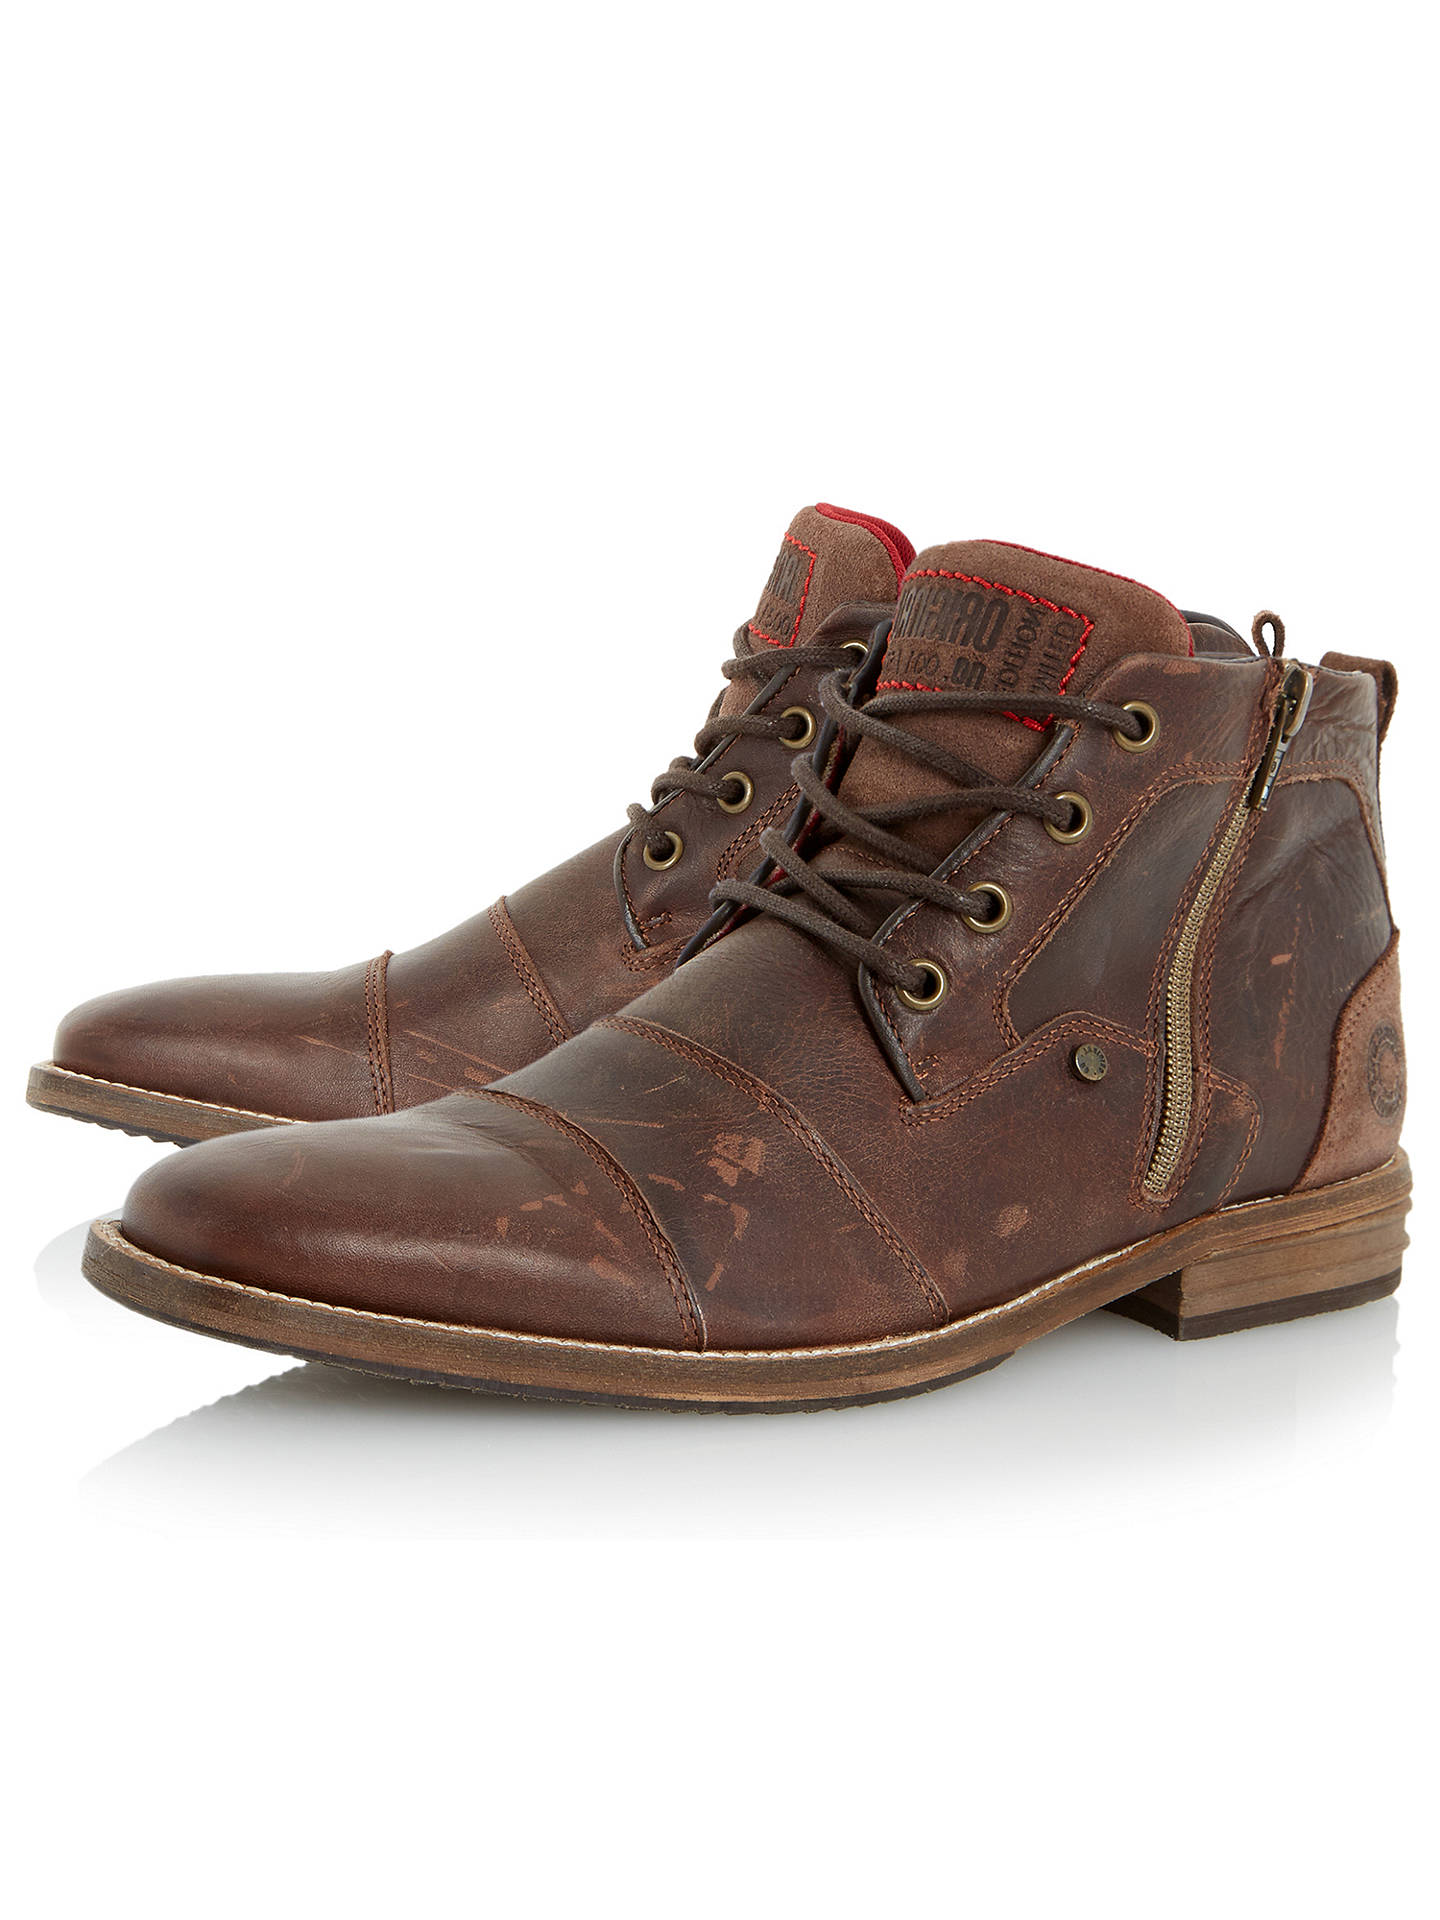 5fe5e67f500 ... Buy Dune Captain Double Toe Cap Detail Leather Boots, Dark Brown, 7  Online at ...